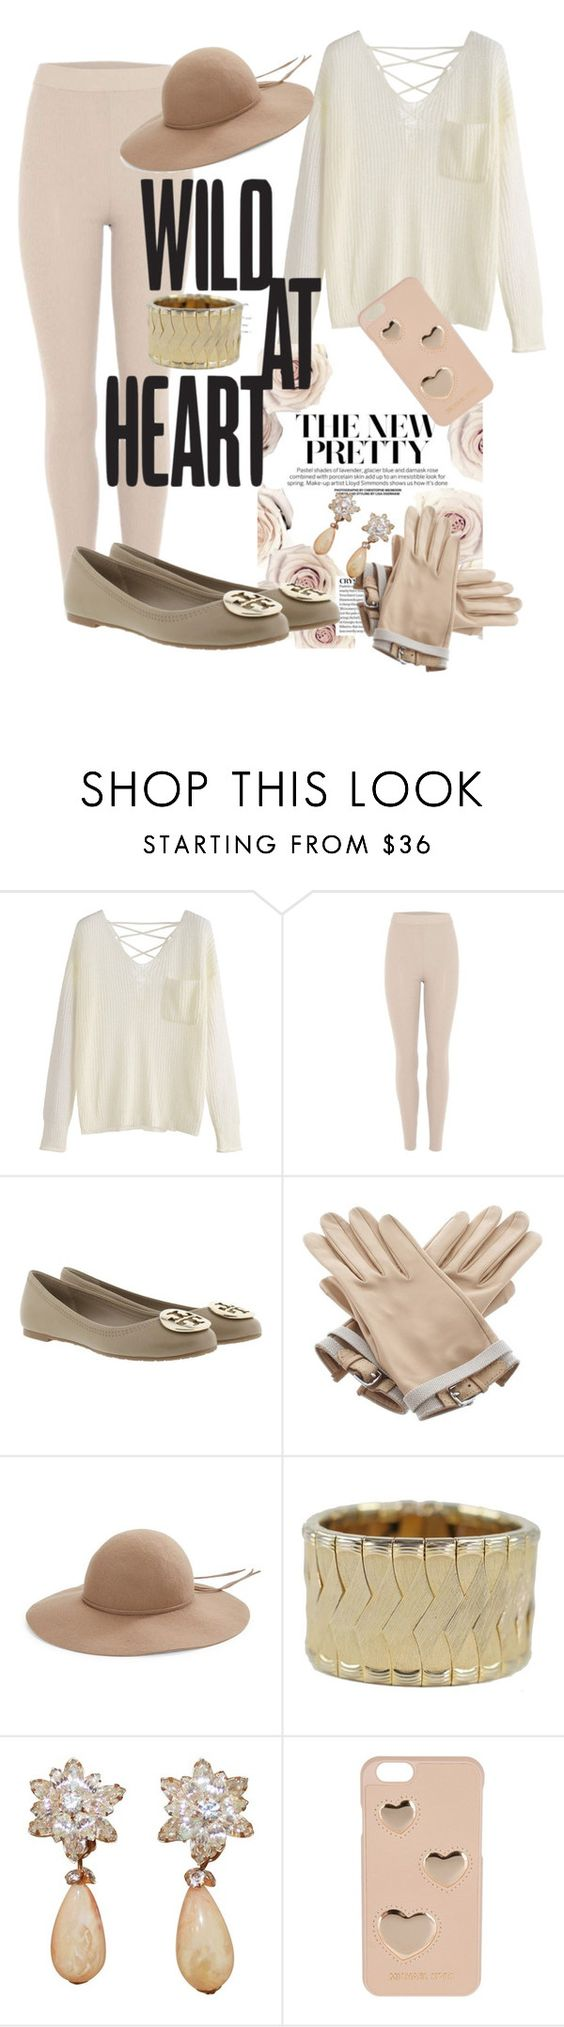 """""""Wild at heart"""" by sarahs884 ❤ liked on Polyvore featuring adidas Originals, Tory Burch, Hermès, Kathy Jeanne and MICHAEL Michael Kors"""